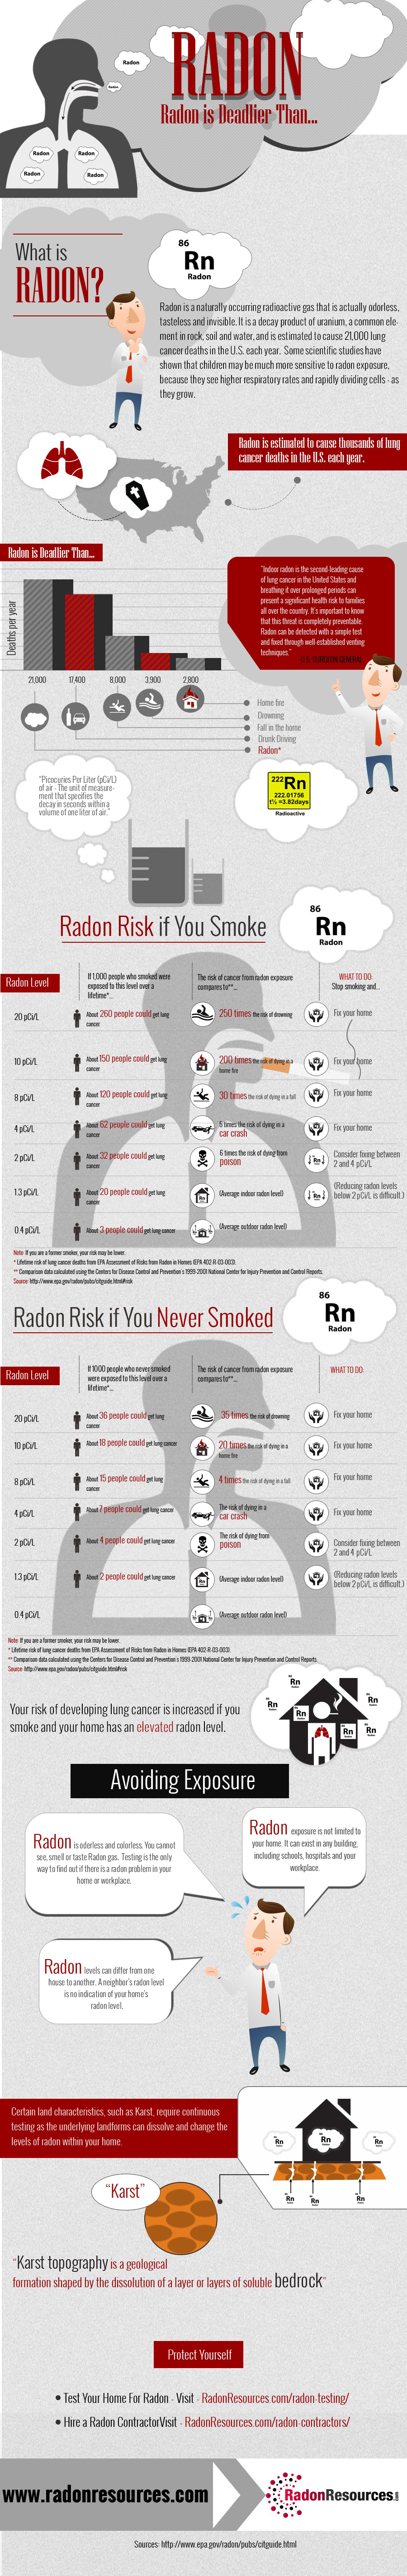 Infographic: Radon Is Deadlier Than